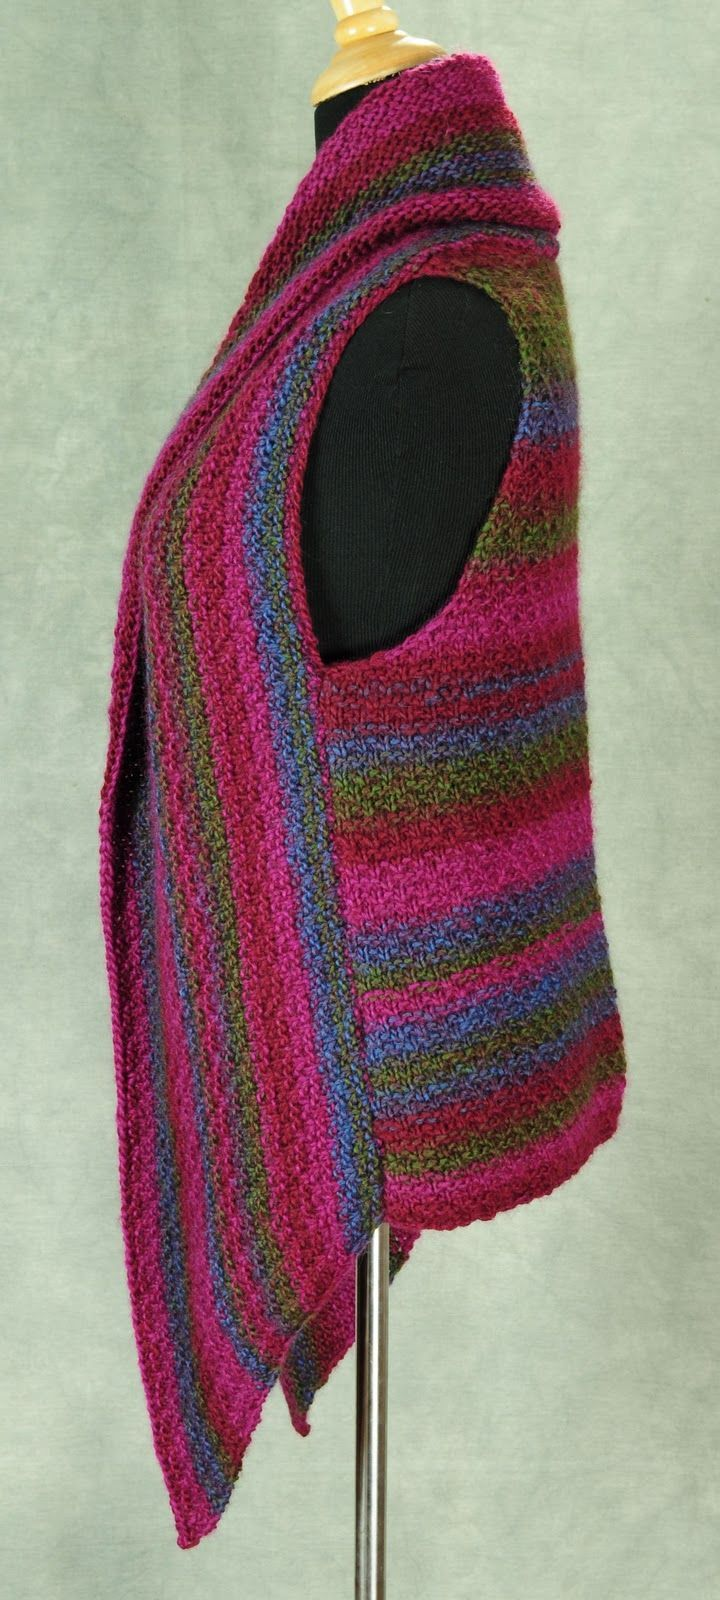 The Prudence Crowley Vest knitted, really interesting design | peri ...